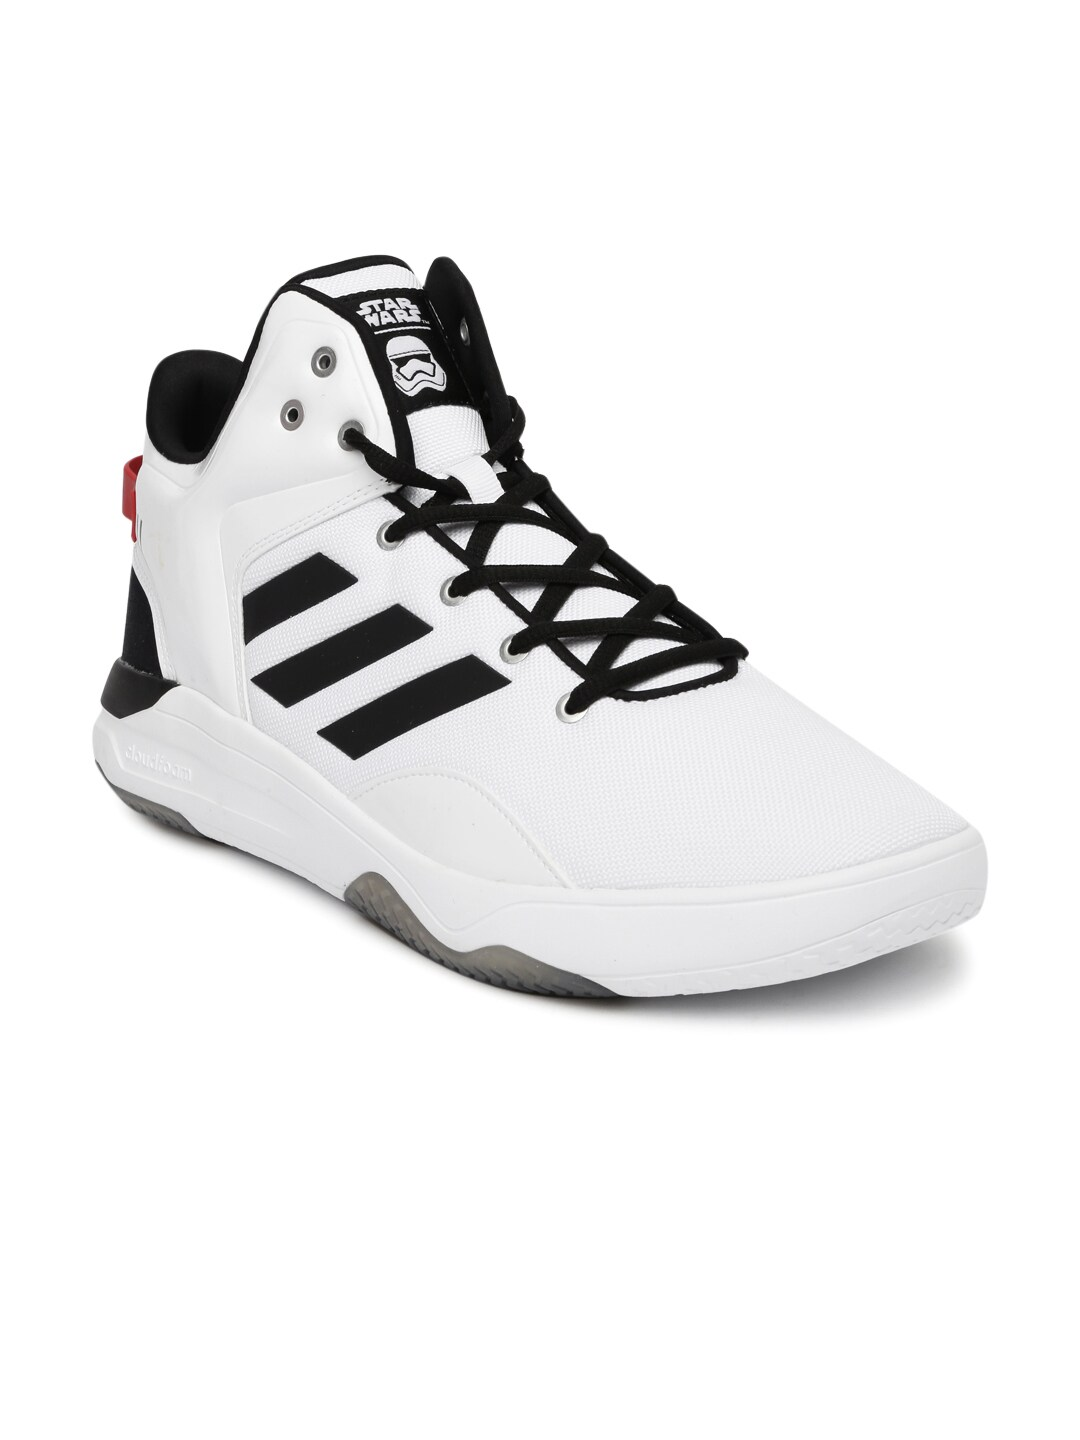 Adidas aw4268 Neo Men White Solid Cloudfoam Revival Star War Mid Top  Sneakers- Price in India 31f225206